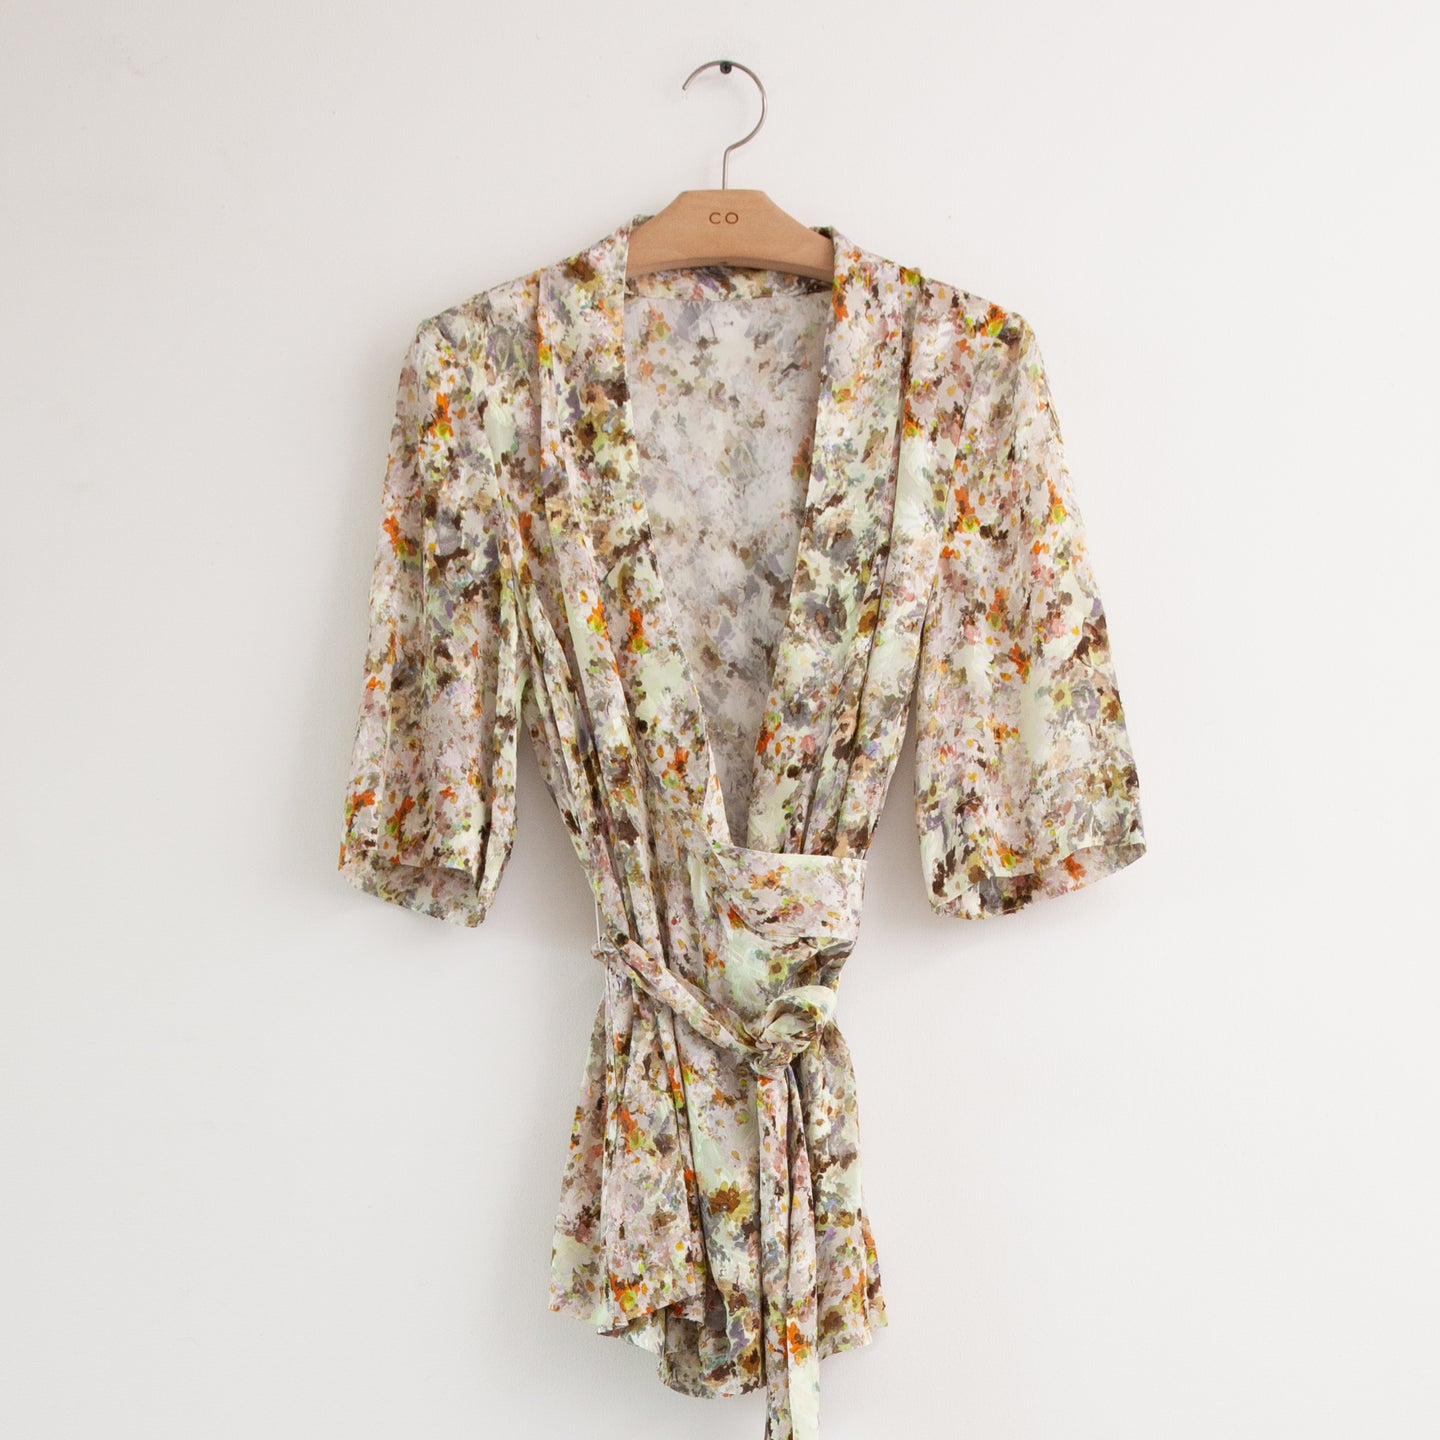 Short sleeve v neck wrap blouse in abstract floral jacquard - CO